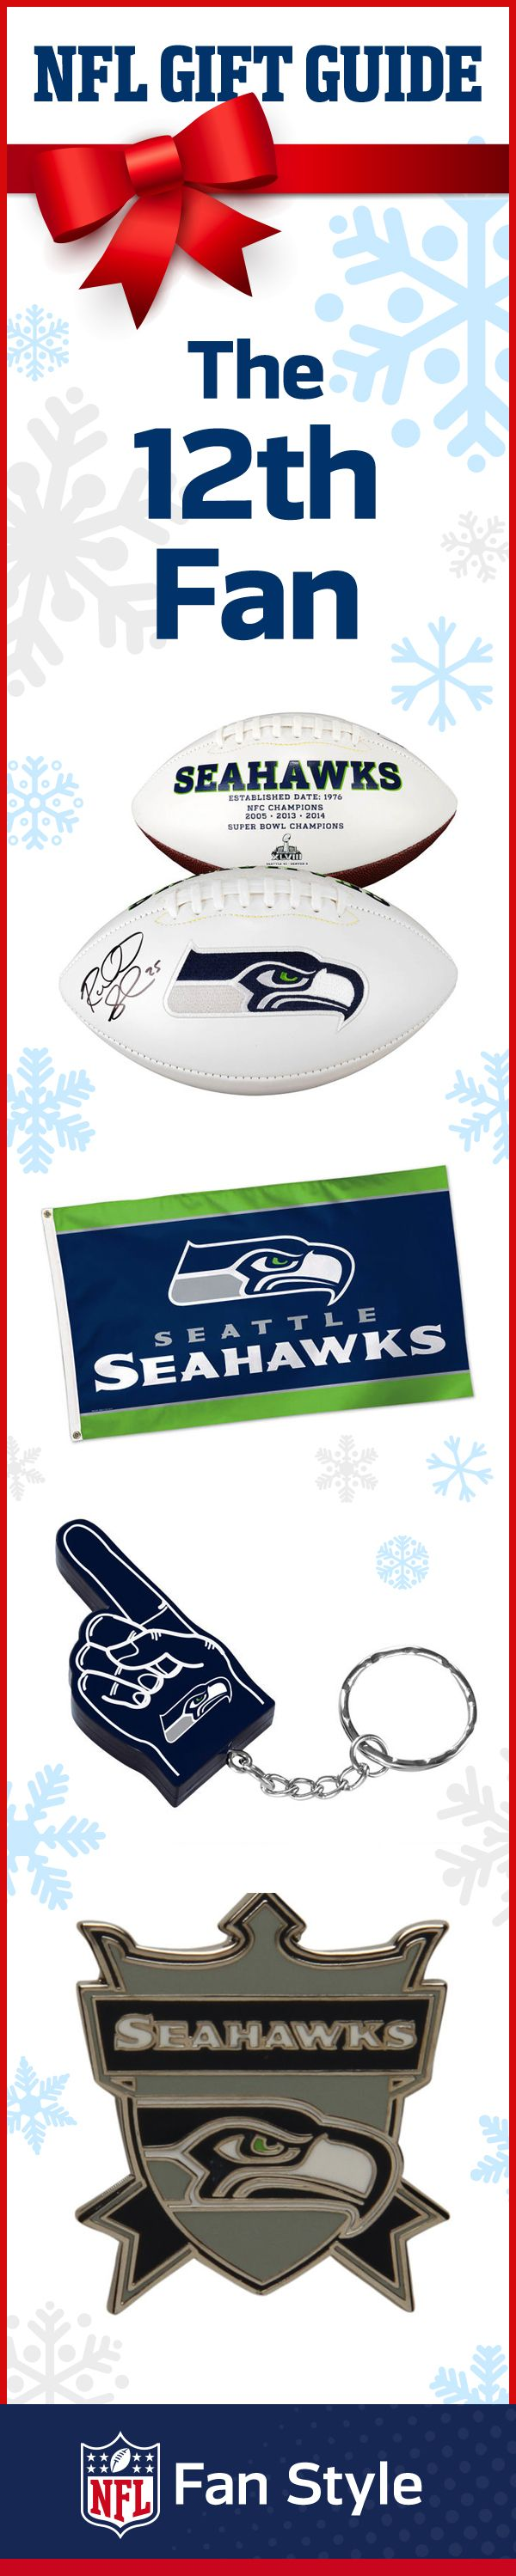 Know somebody who absolutely bleeds blue and green? Then this Seattle Seahawks 12th Fan kit is just for them. With all these special accessories, they won't ever be able to have a little Seahawks with them wherever they go.